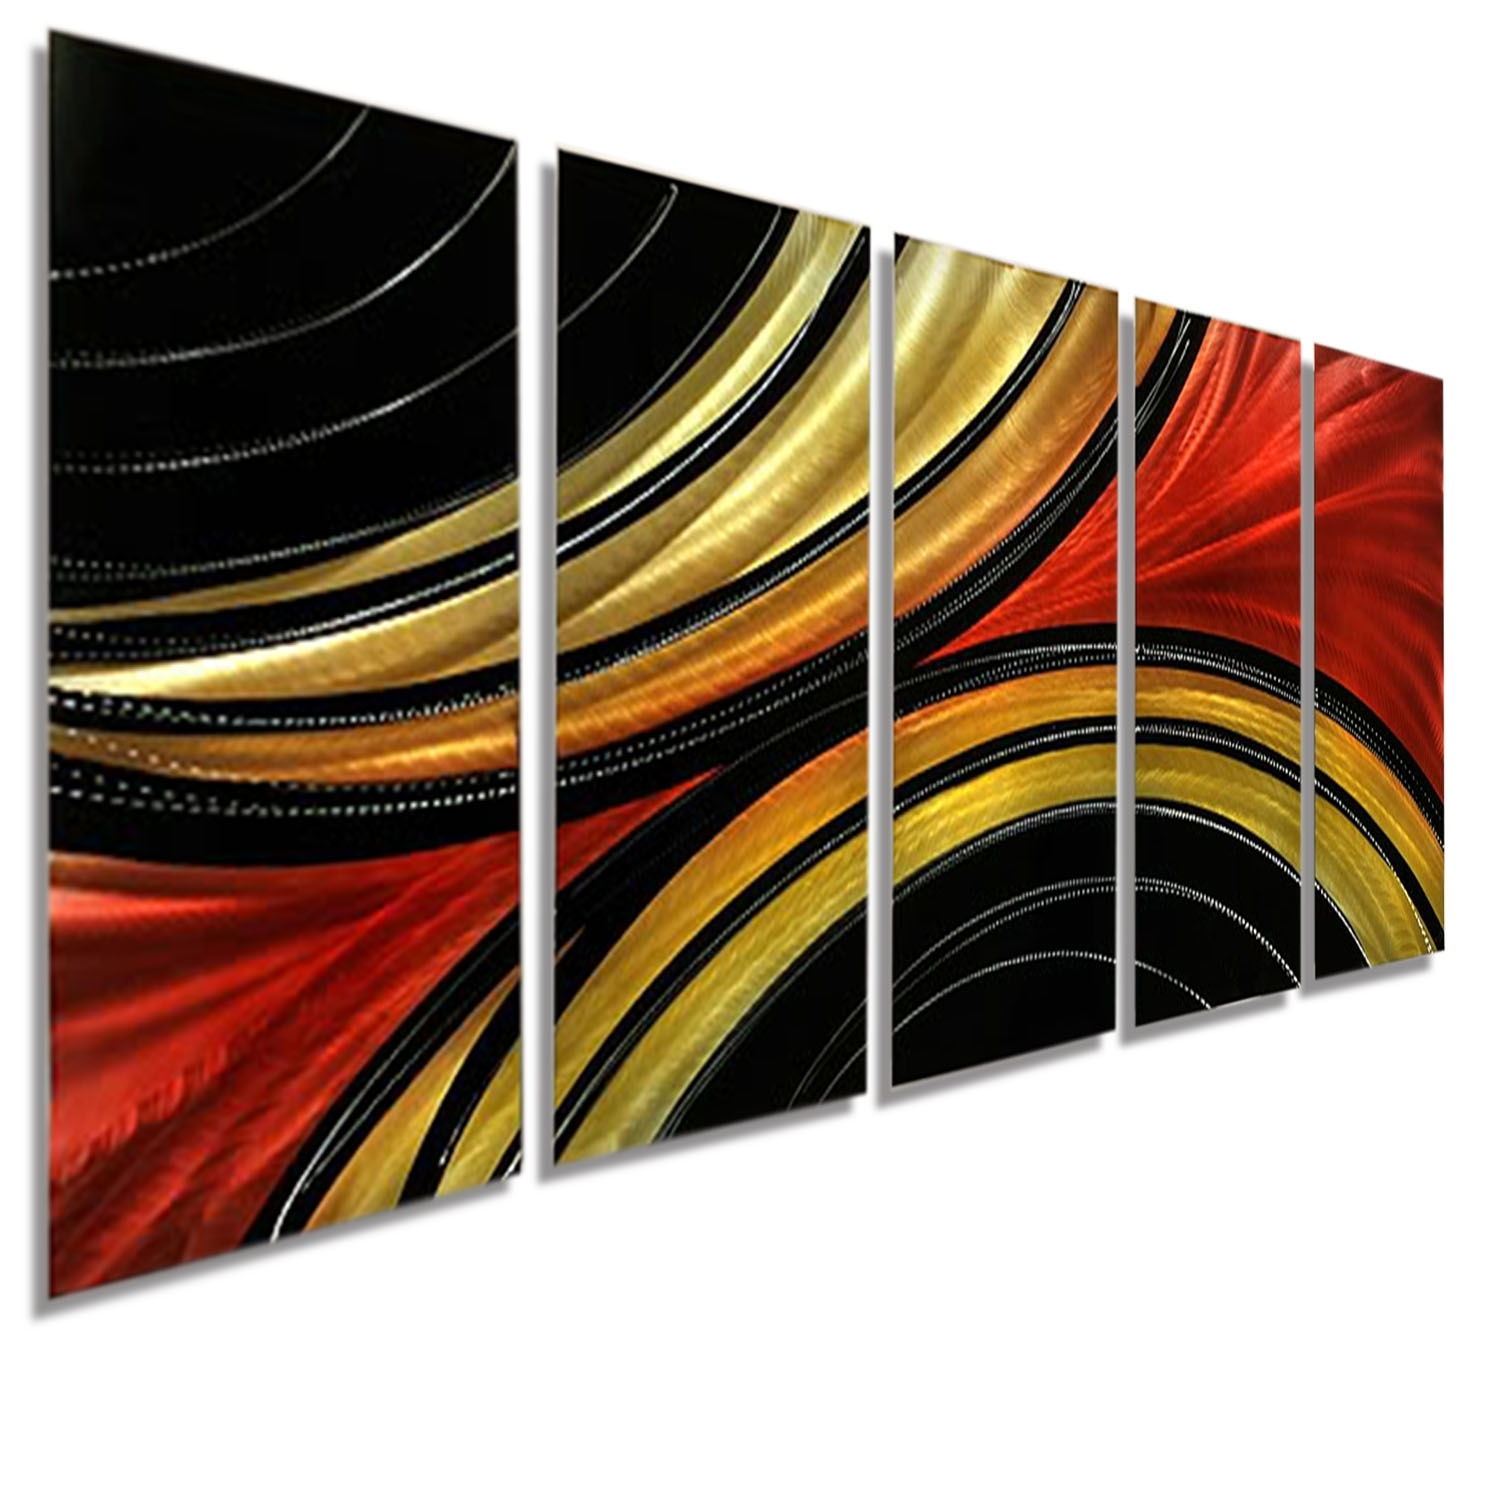 Solaris Xl – Massive Metal Abstract Red Black Gold Painting Wall Regarding Current Black And Gold Abstract Wall Art (View 18 of 20)